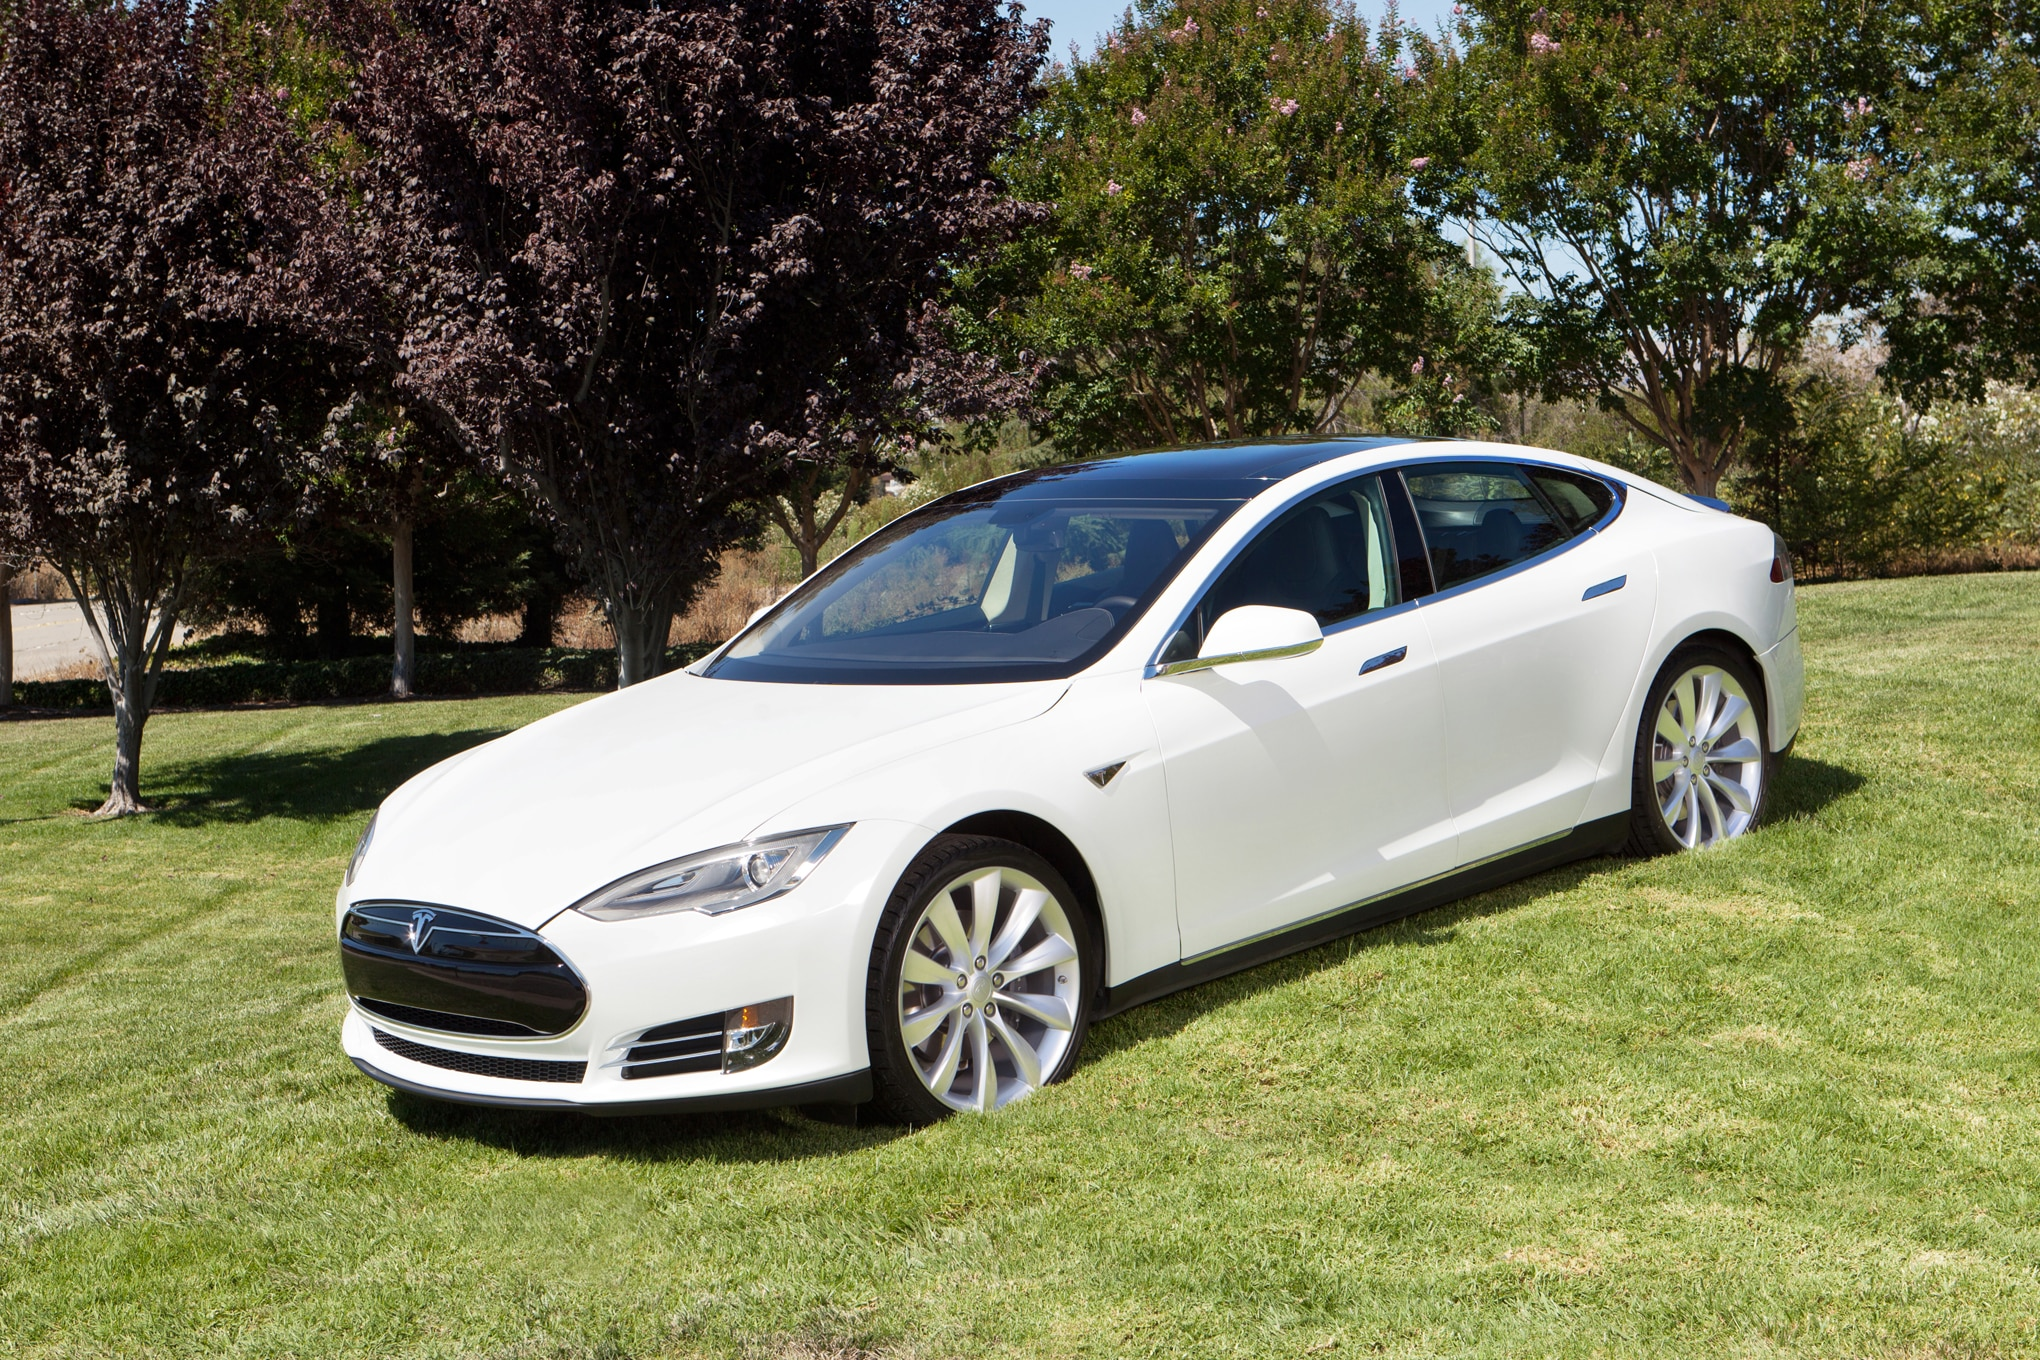 Certified Pre Owned Infiniti >> You Can Now Buy a Certified Pre-Owned Tesla Model S